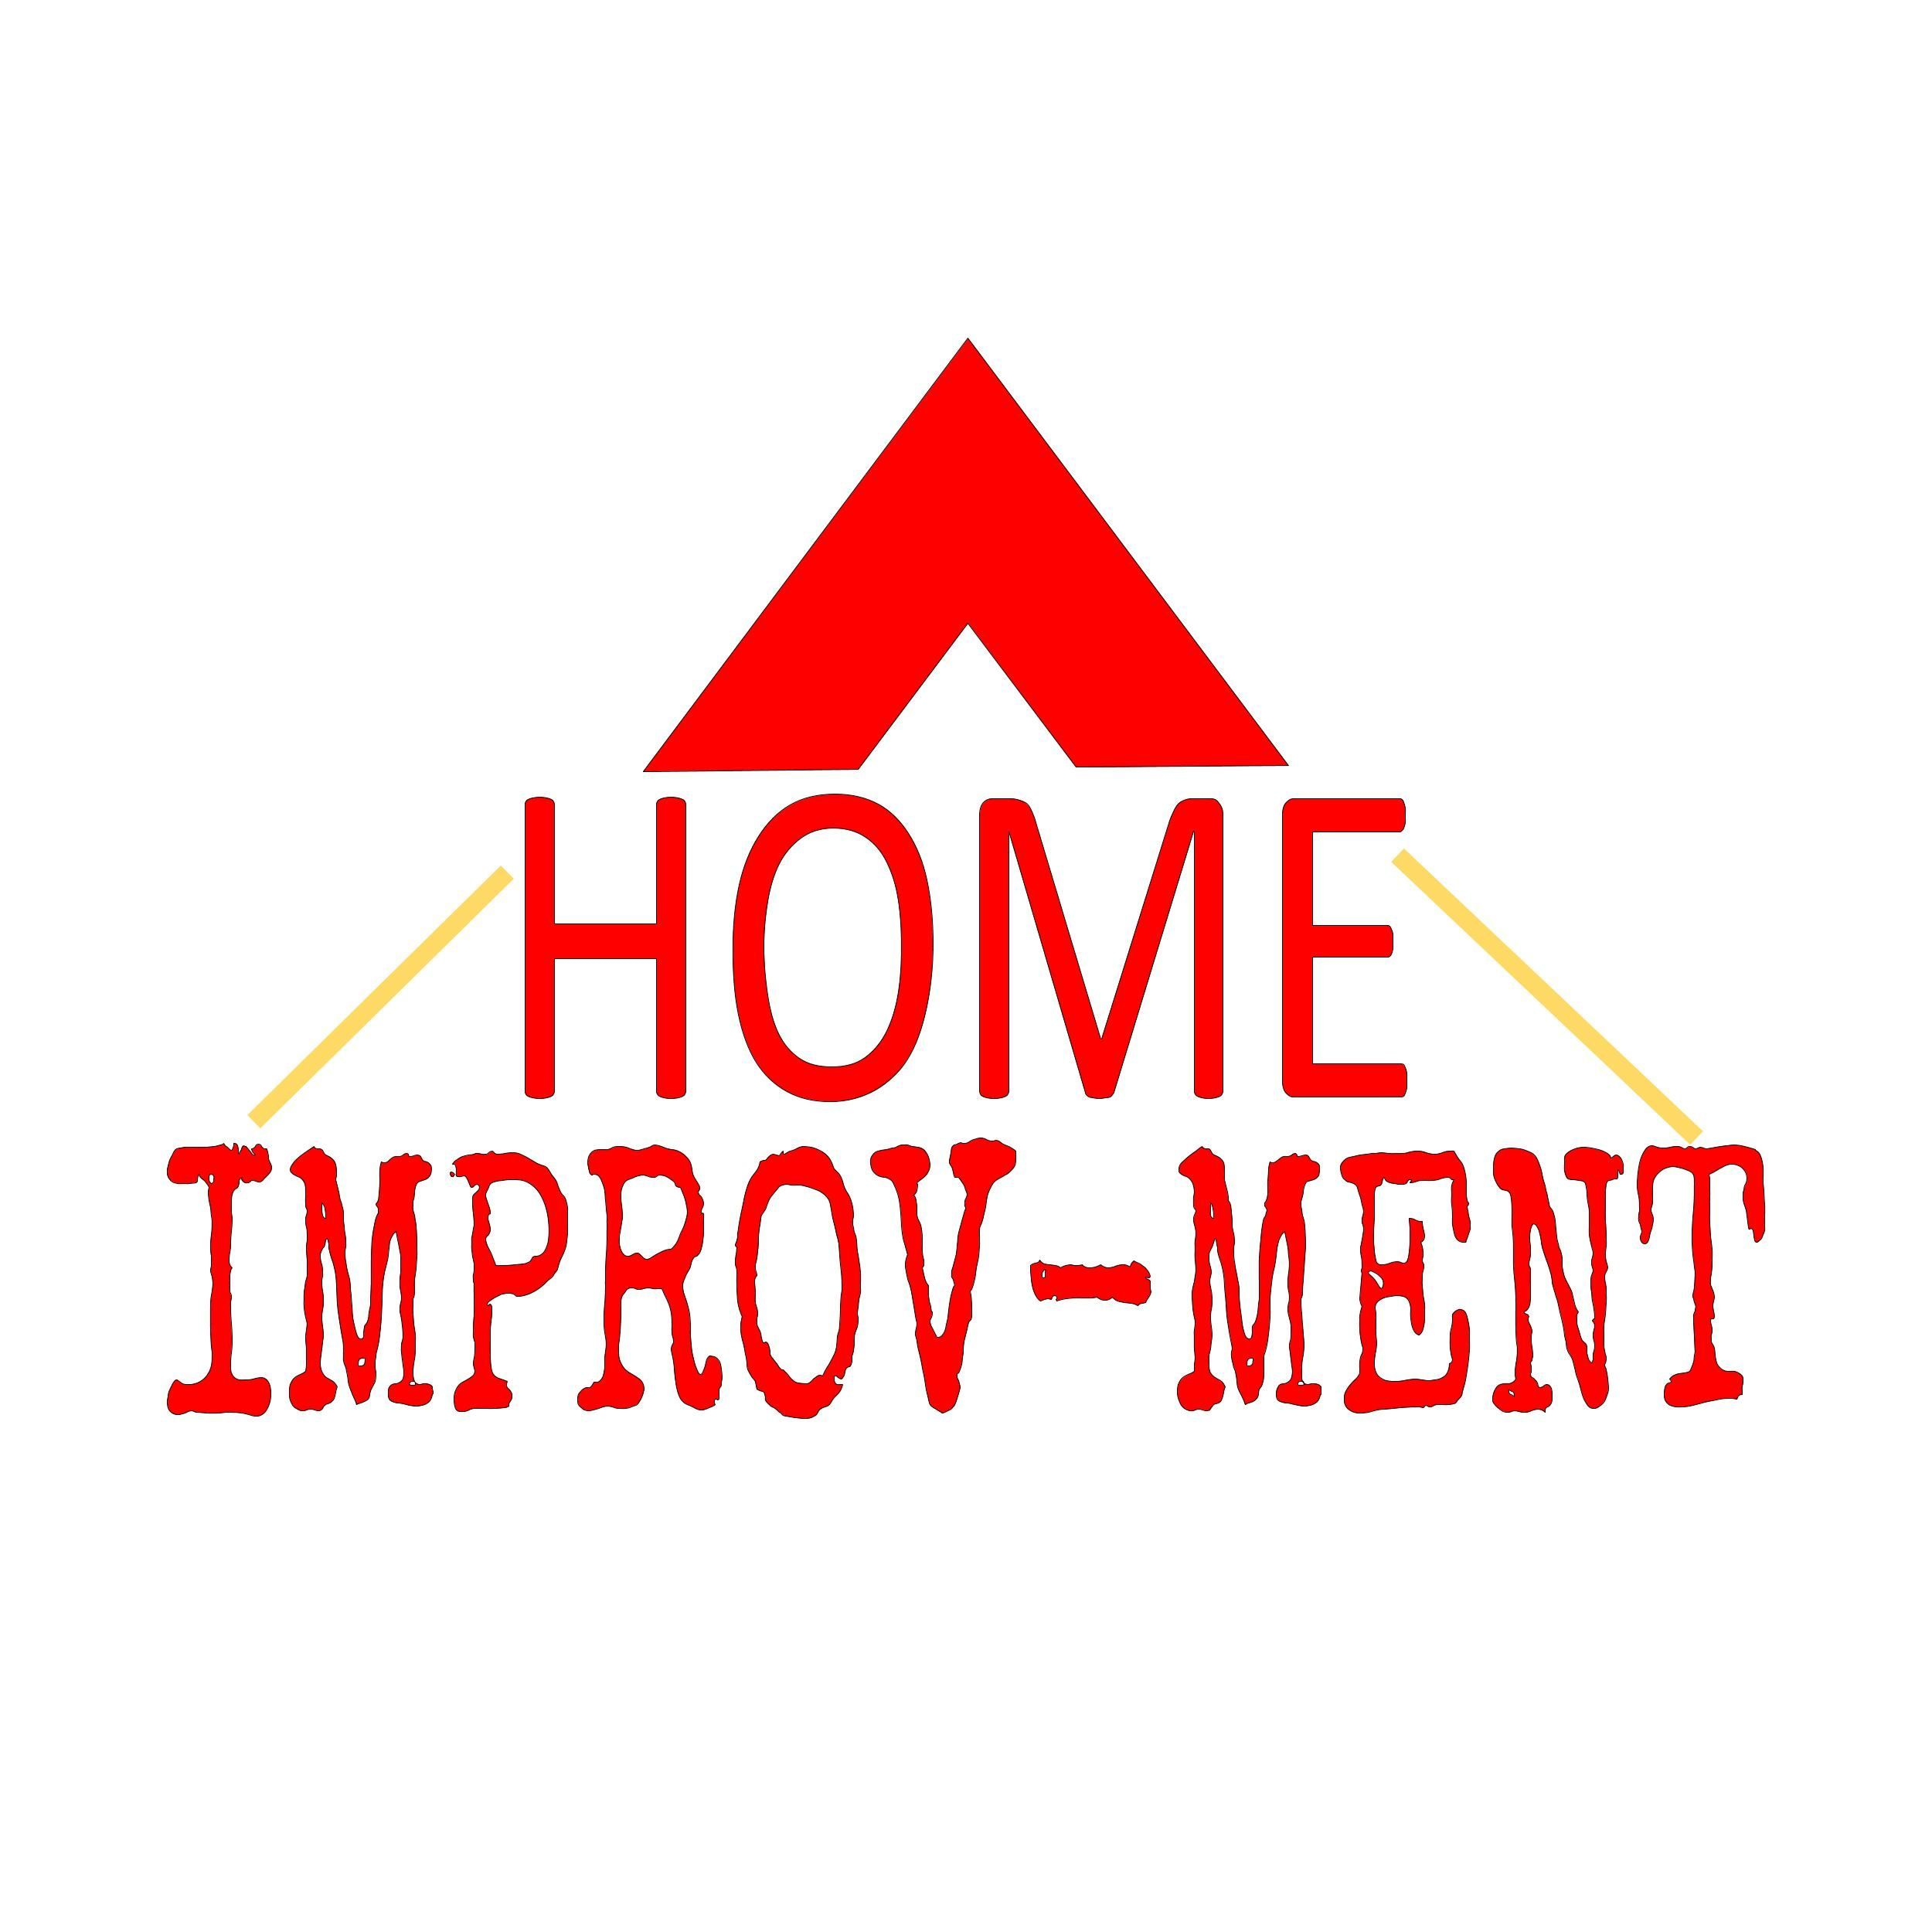 Home Improv-ment S4 E1: Back in the Saddle Shoes Again